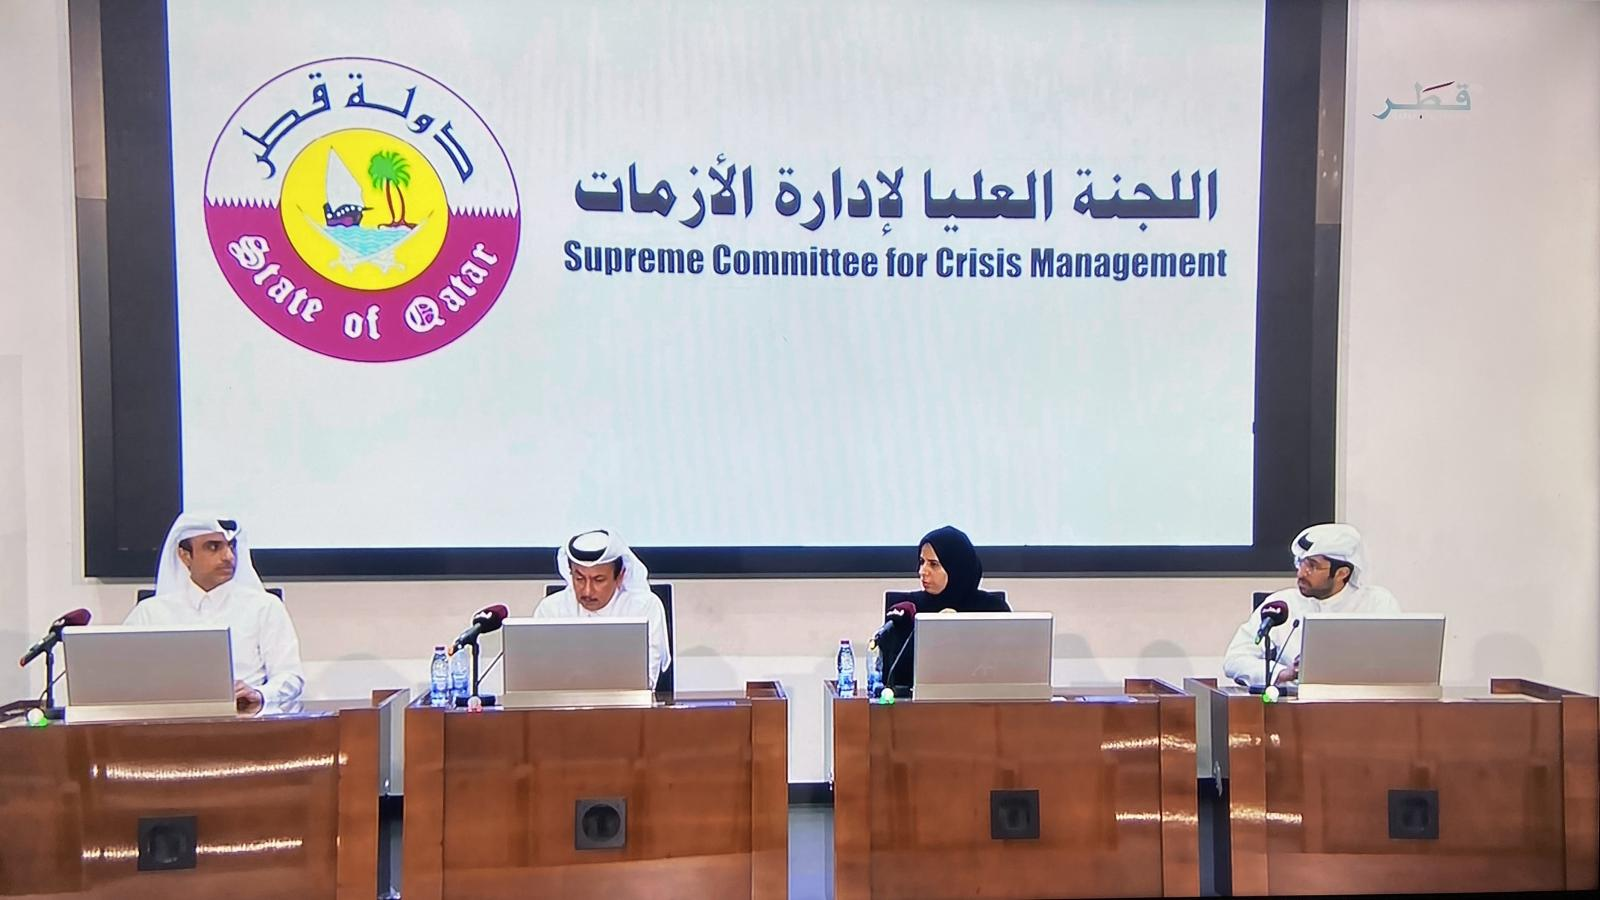 Shutdown of Industrial Area, salons and retail stores in shopping malls part of new measures to combat COVID-19 in Qatar